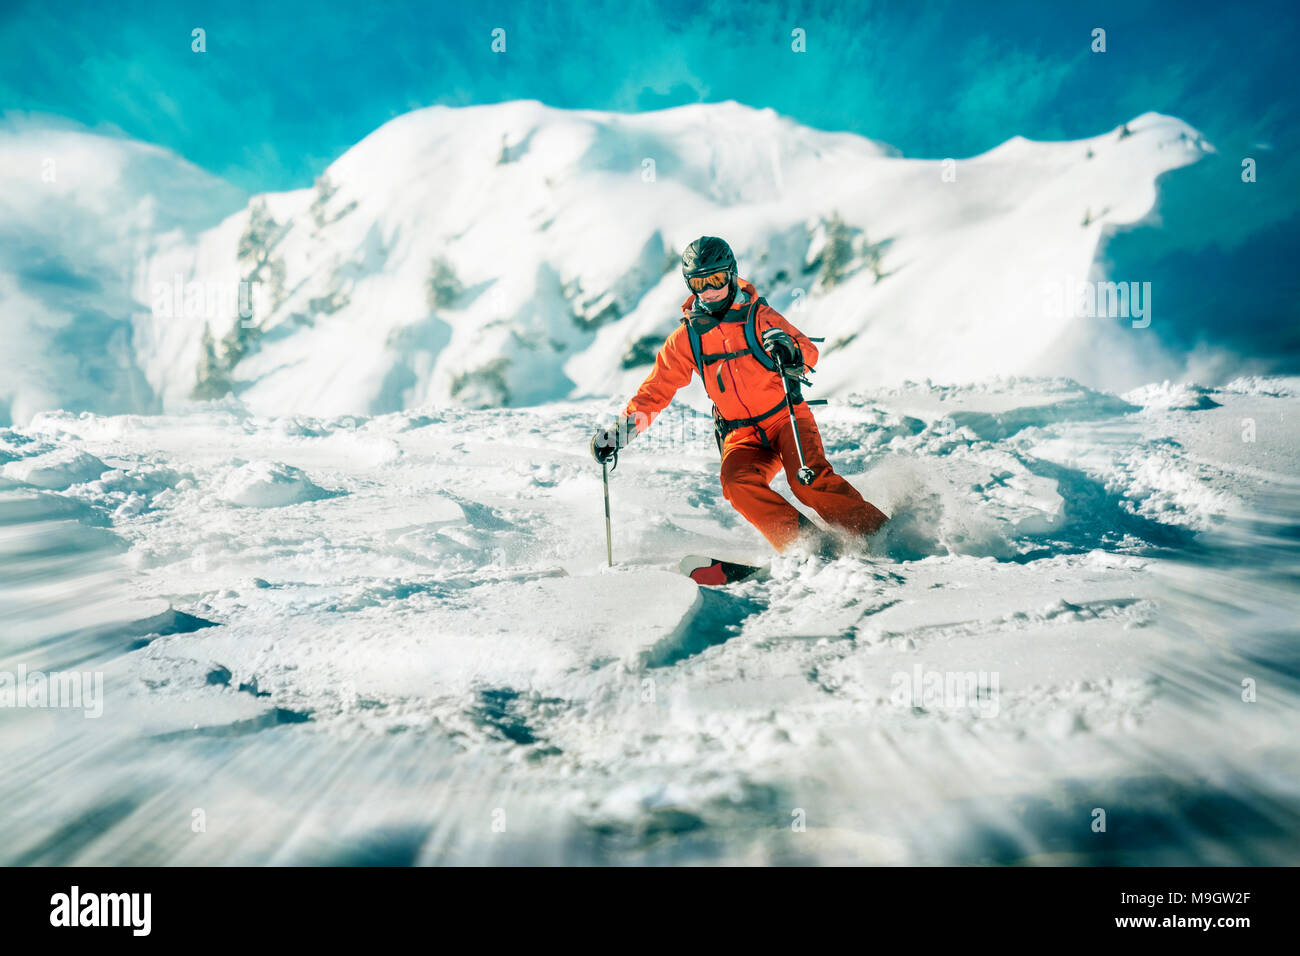 Female skiers action skiing in deep snow - Stock Image